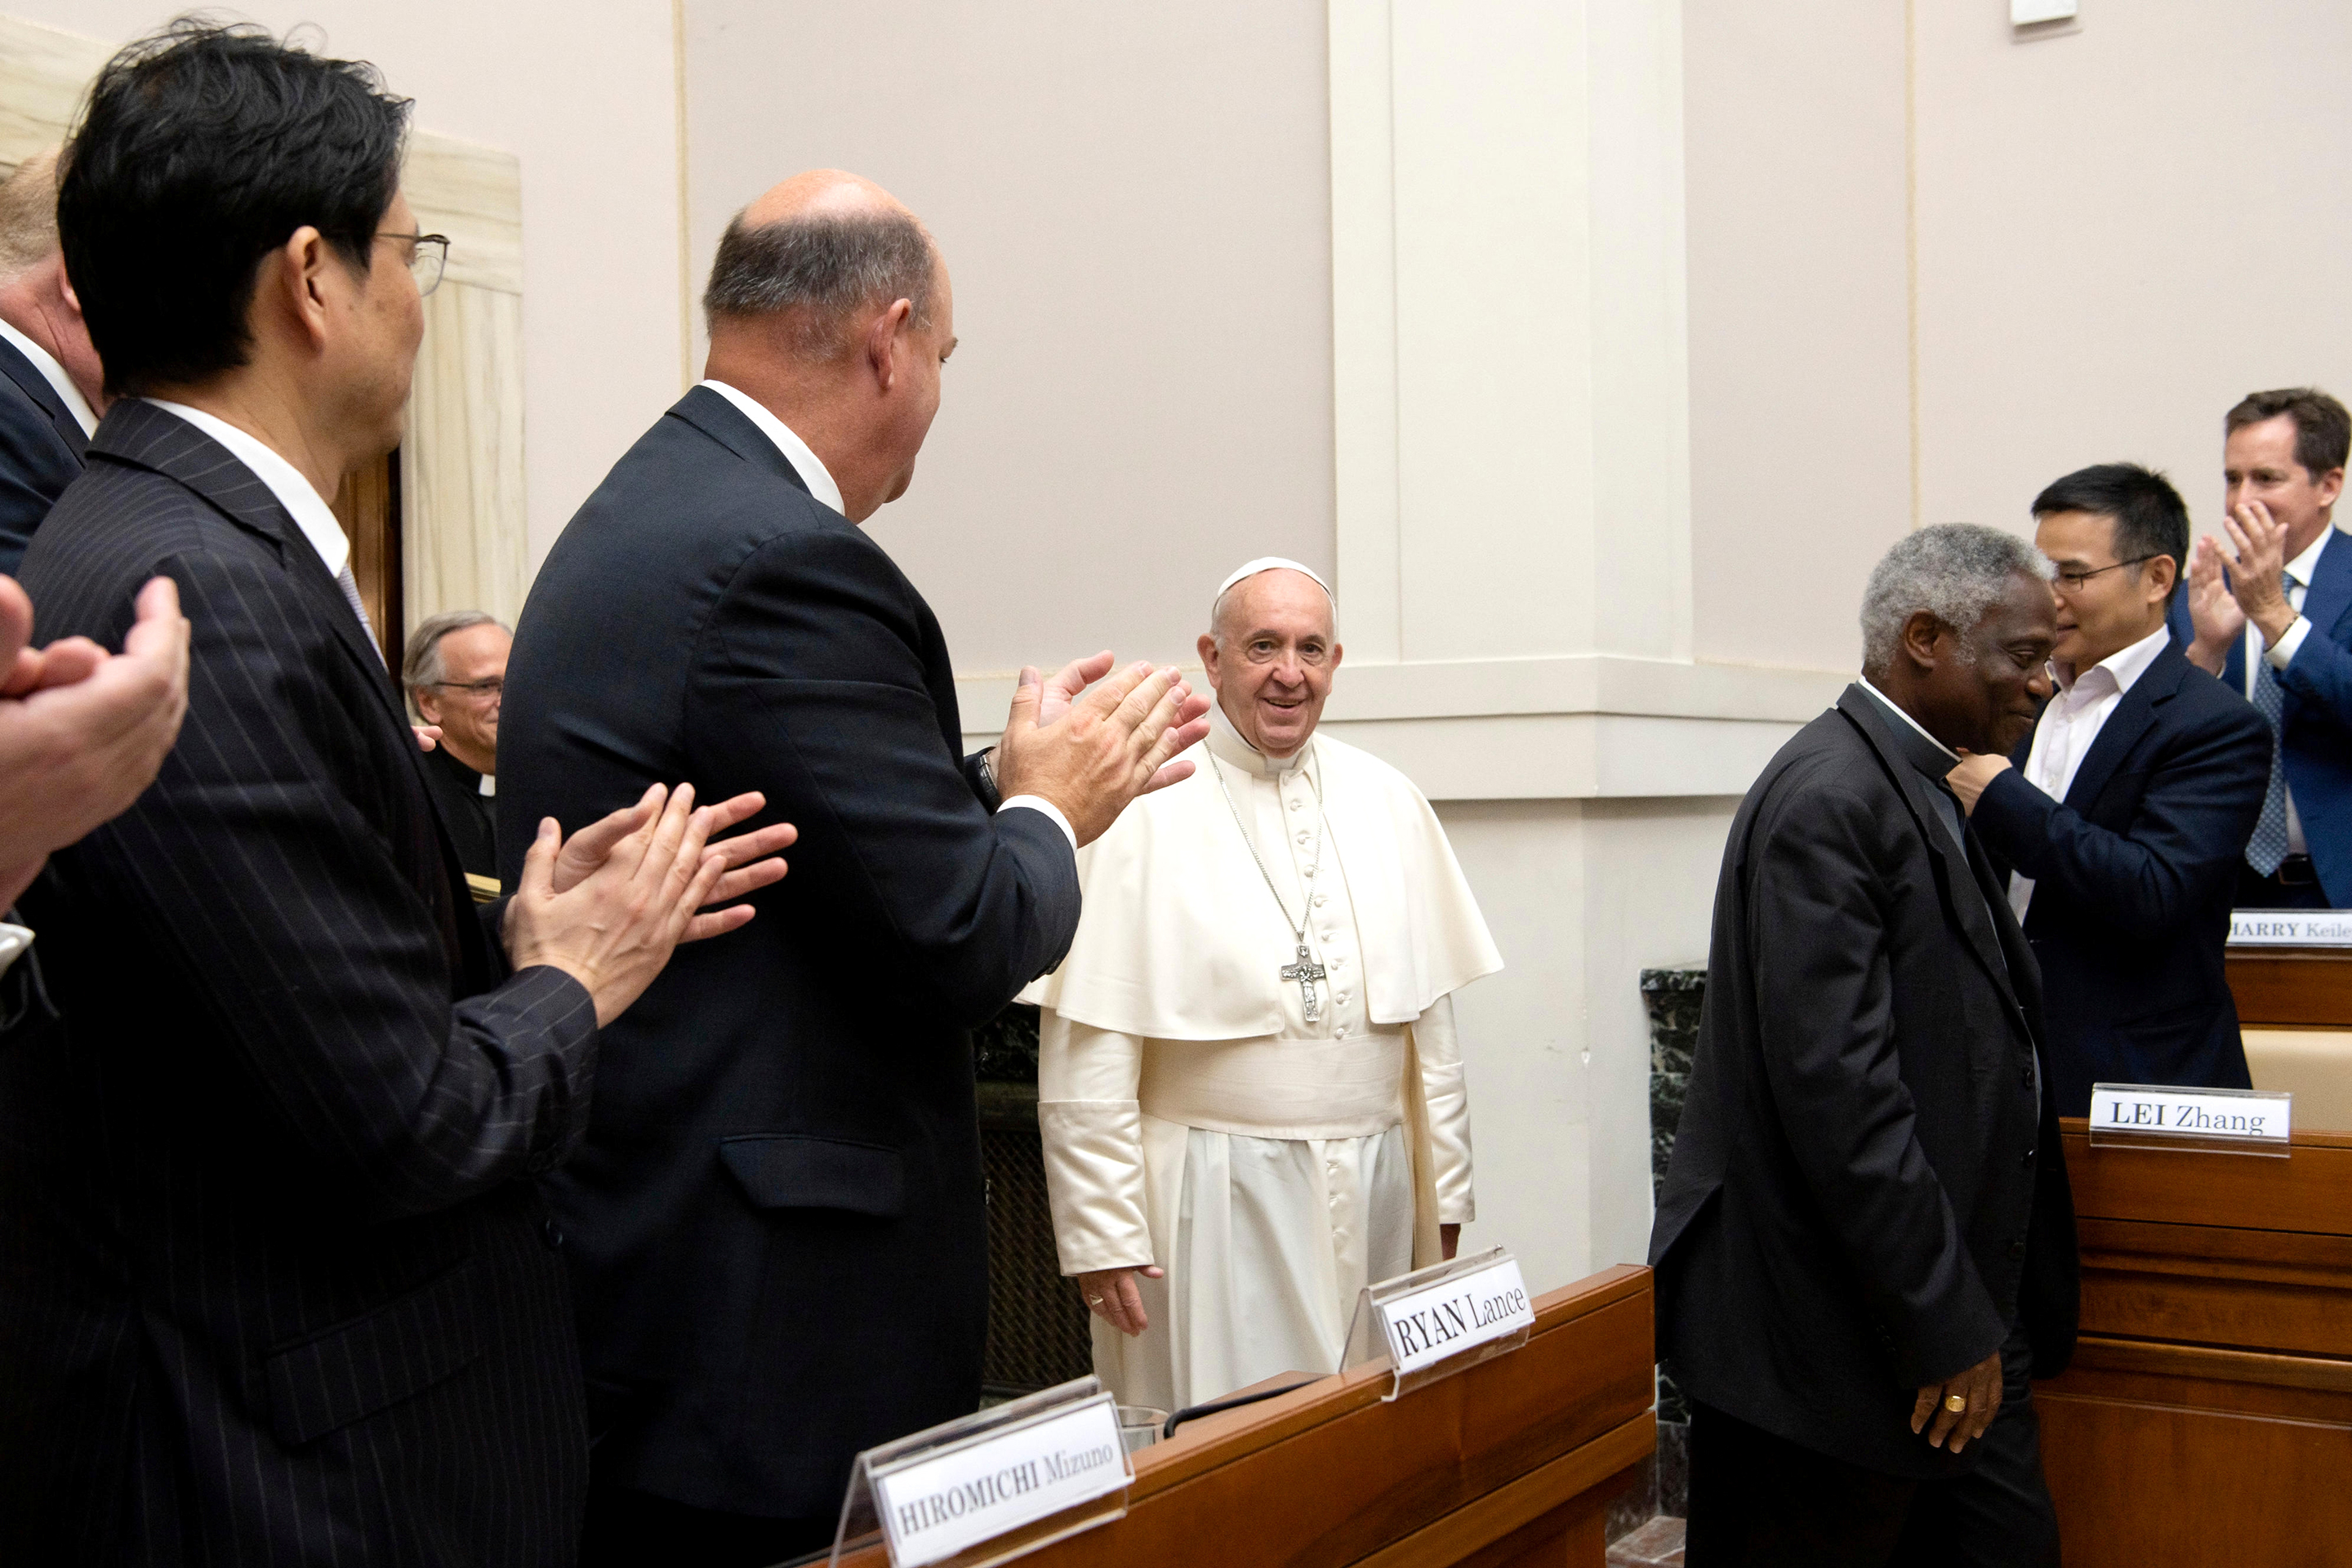 Pope Francis Climate Change Energy Representatives